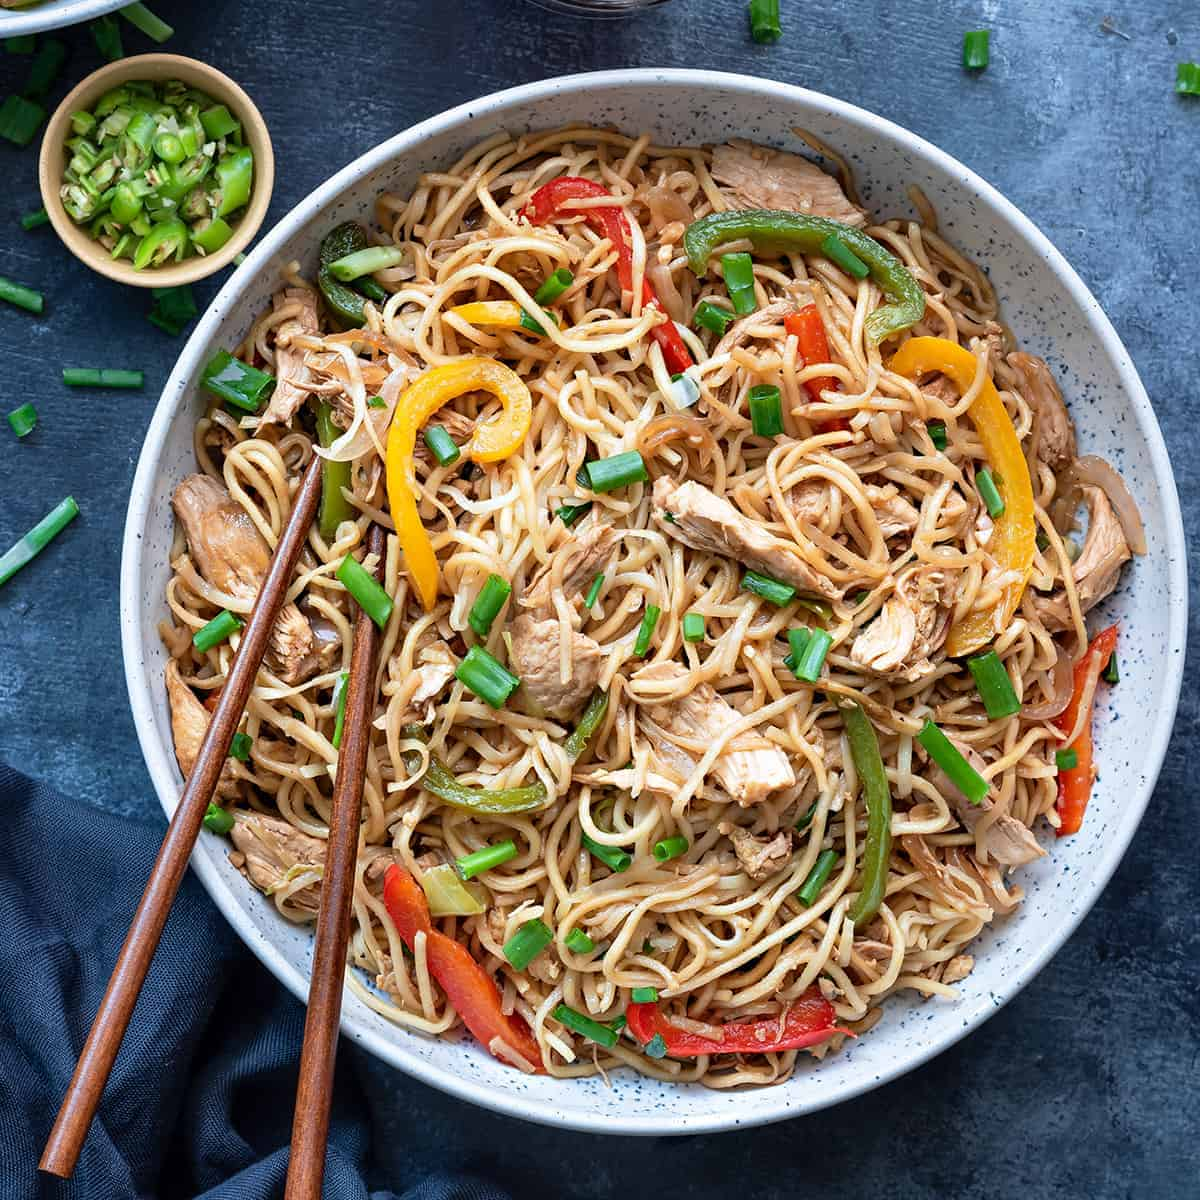 Chicken Hakka Noodles in blue bowl with pair of chopsticks into it.